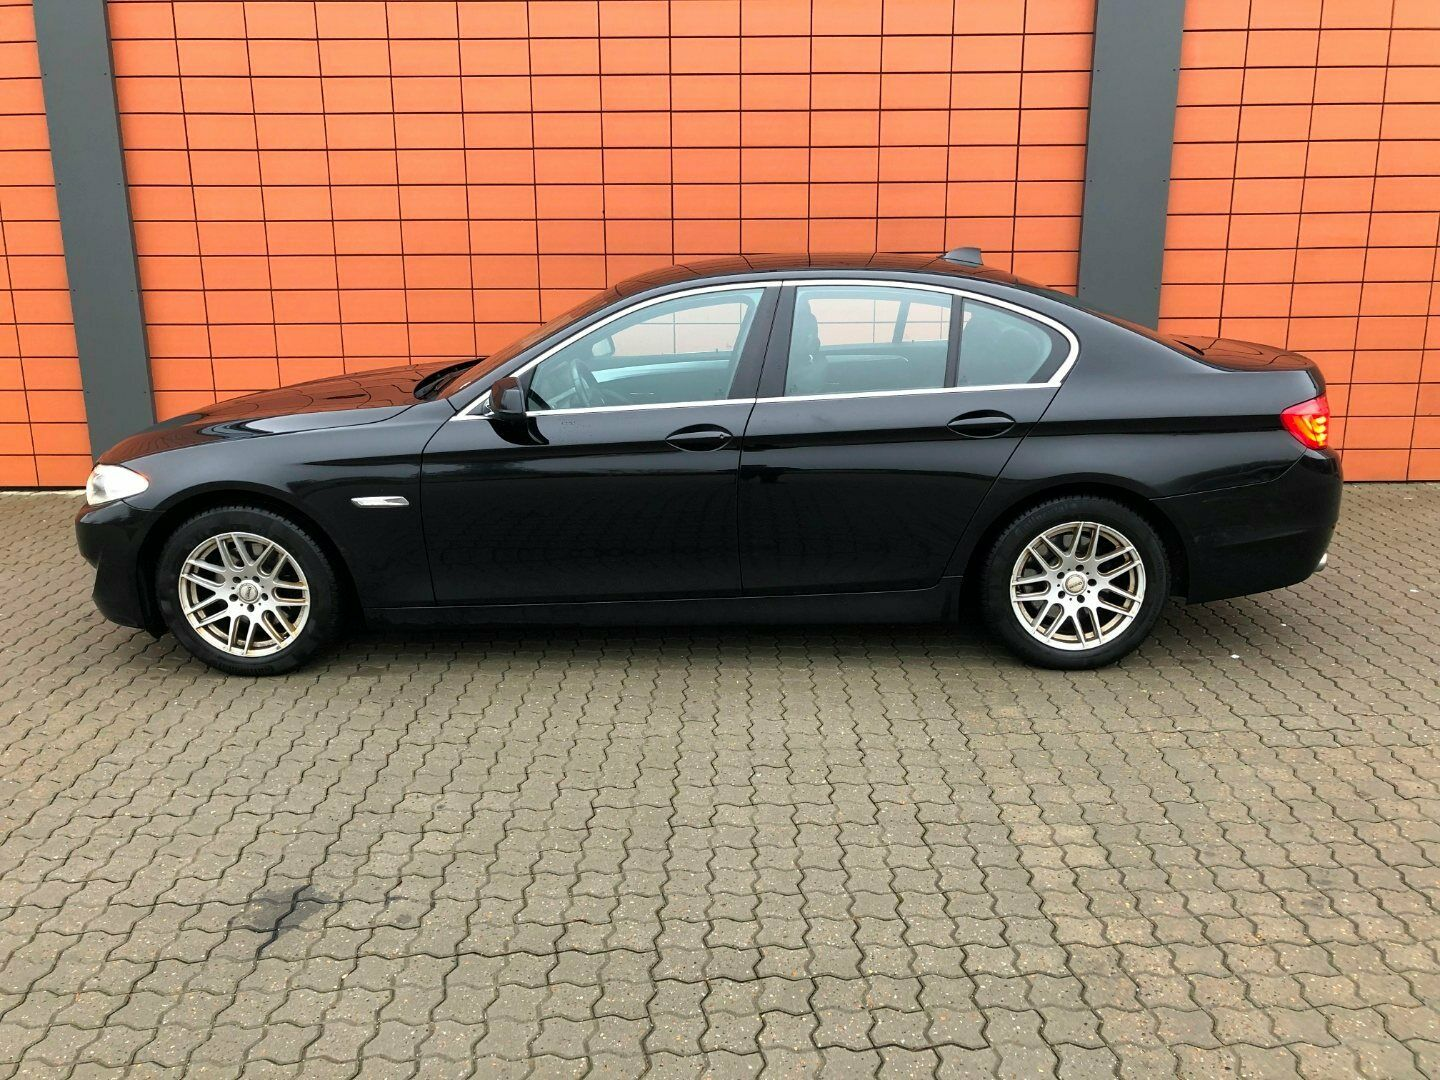 BMW 520d 2,0 aut. 4d, Sortmetal